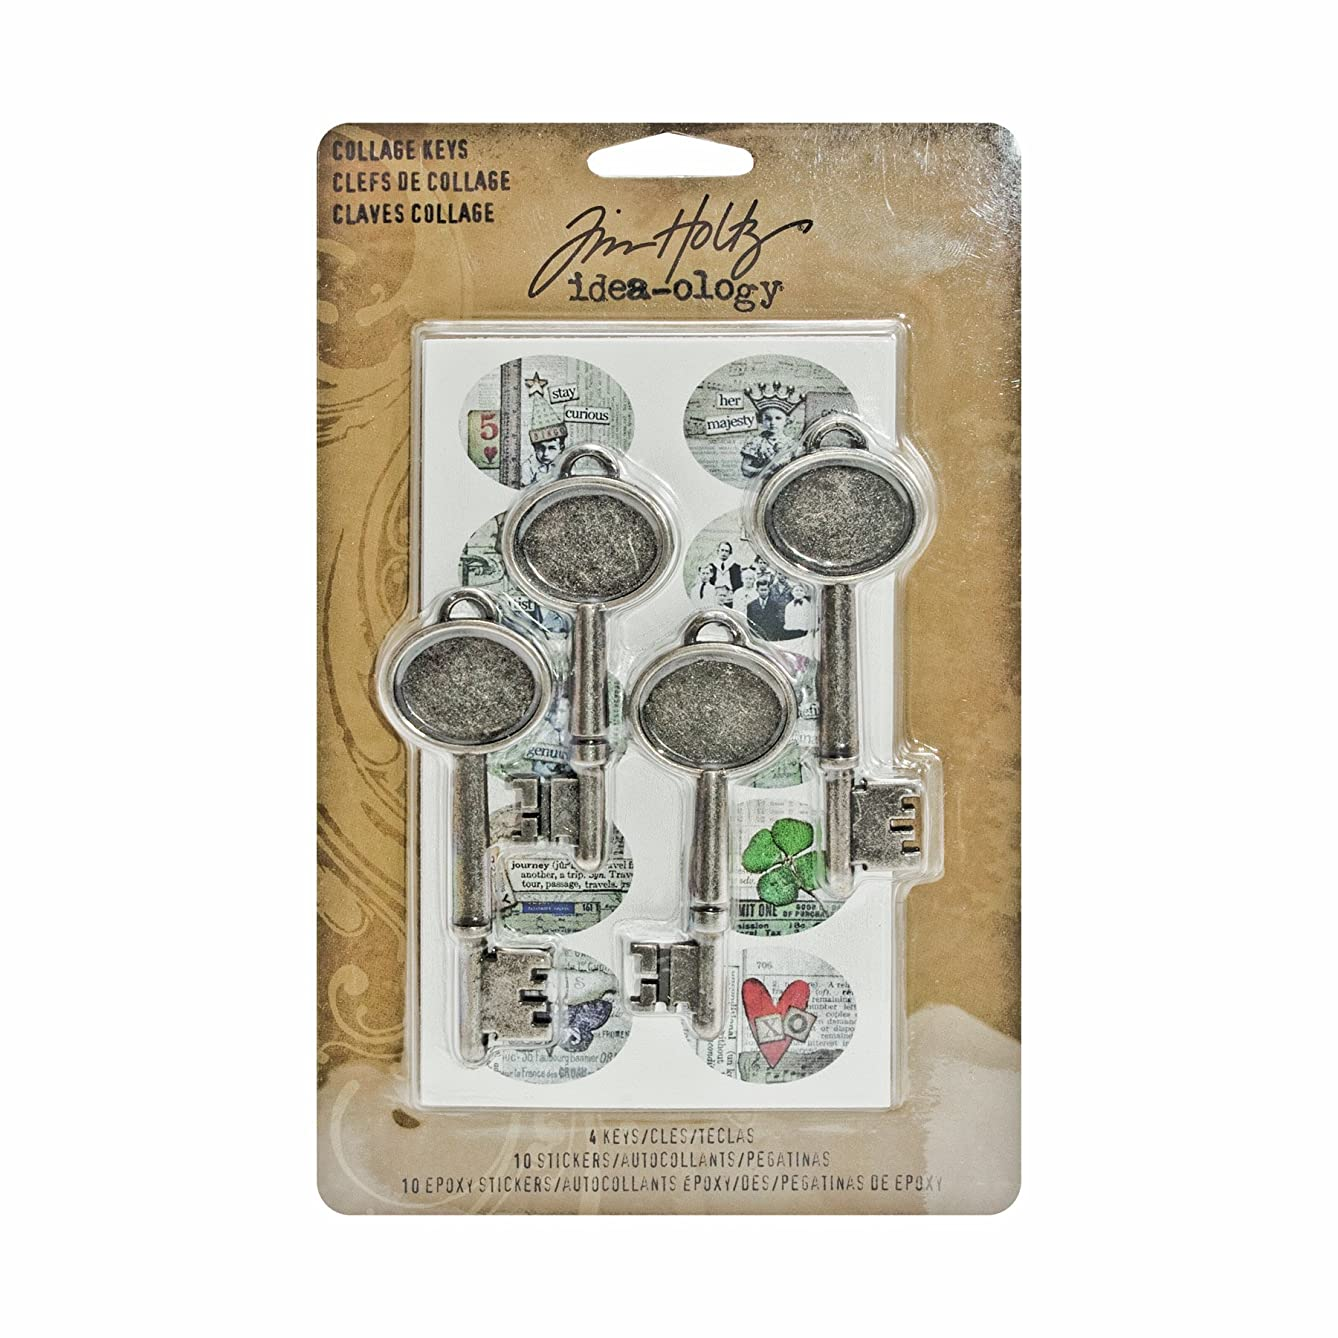 Collage Keys by Tim Holtz Idea-ology, Assorted Sizes, 4 Keys and 20 Stickers, Multicolored, TH93079